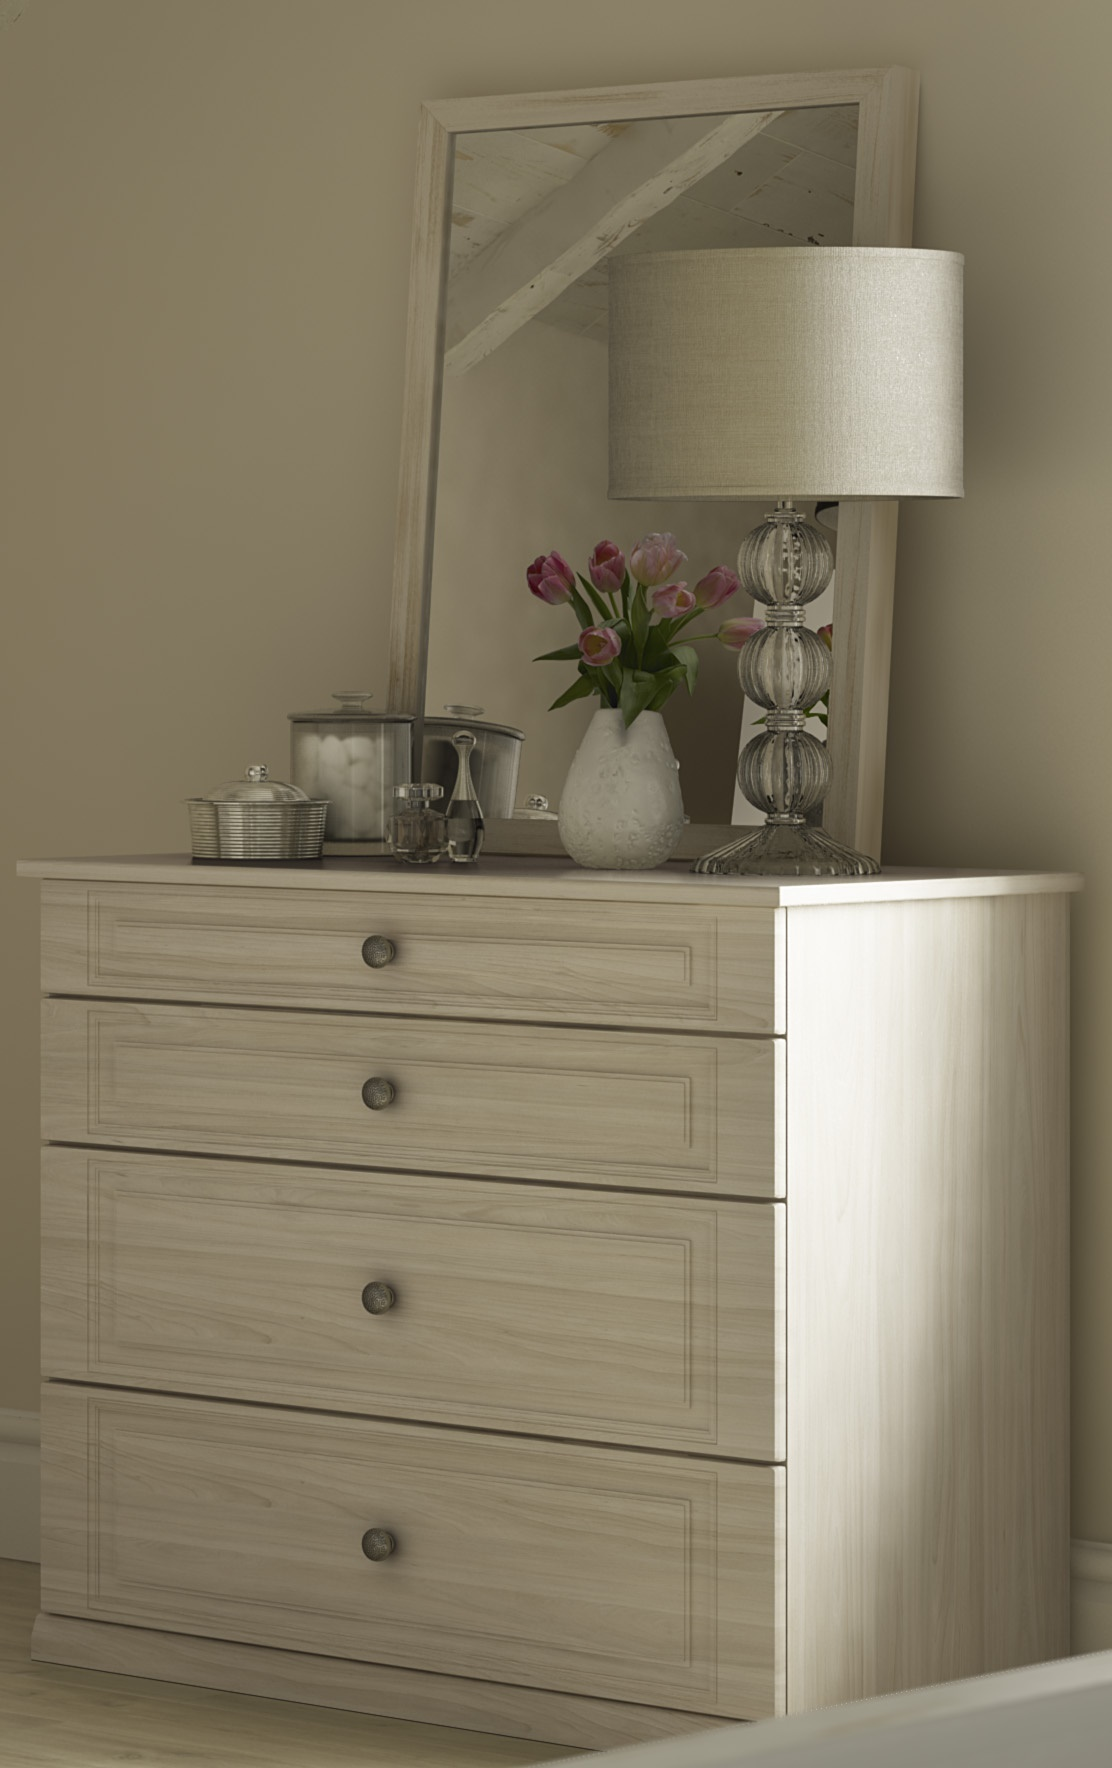 Free Standing - Balmoral 2 plus 2 drawer